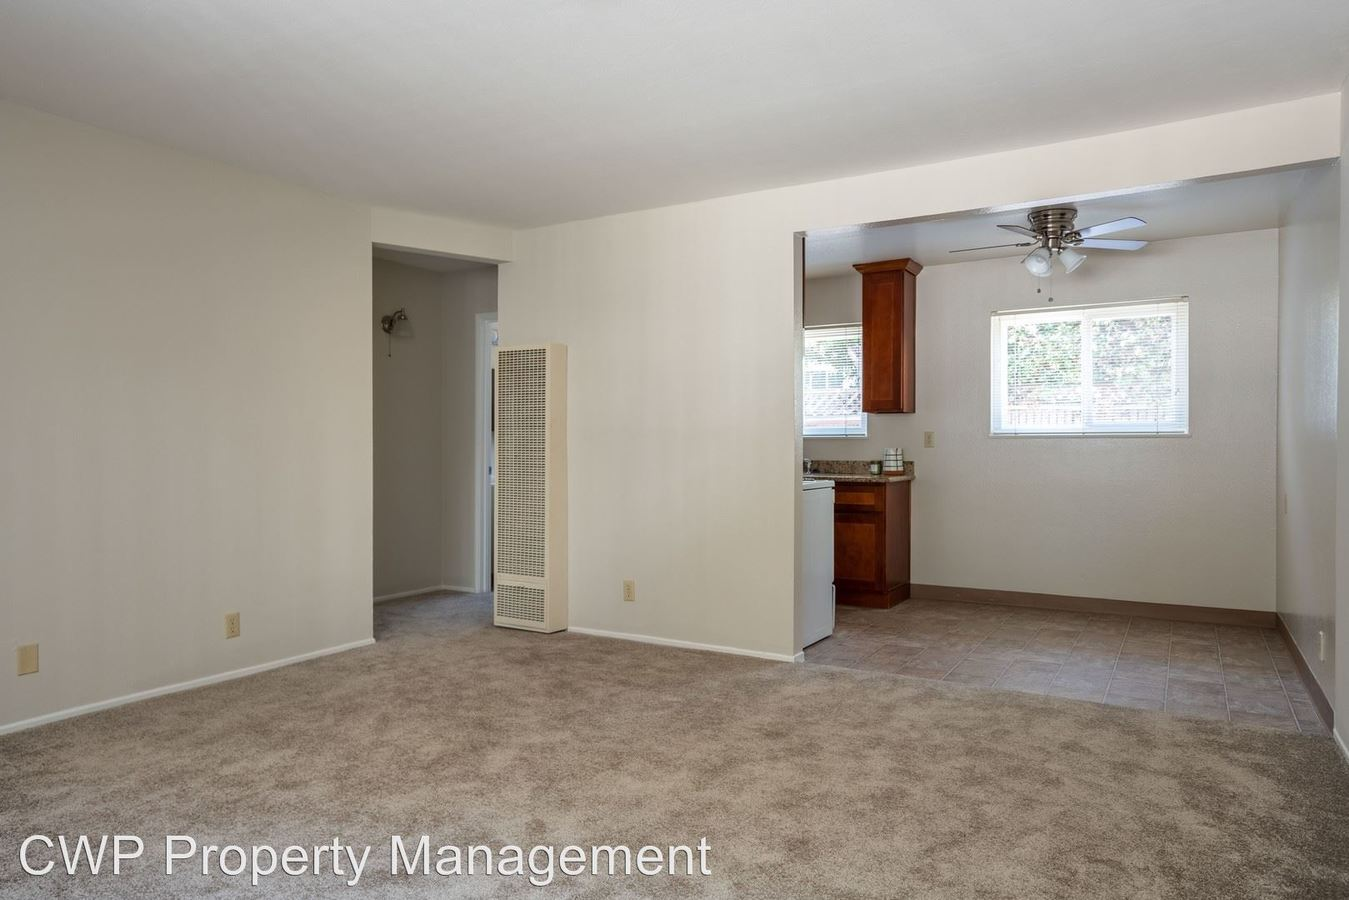 2 Bedrooms 1 Bathroom Apartment for rent at 2265 Marina Blvd in San Leandro, CA